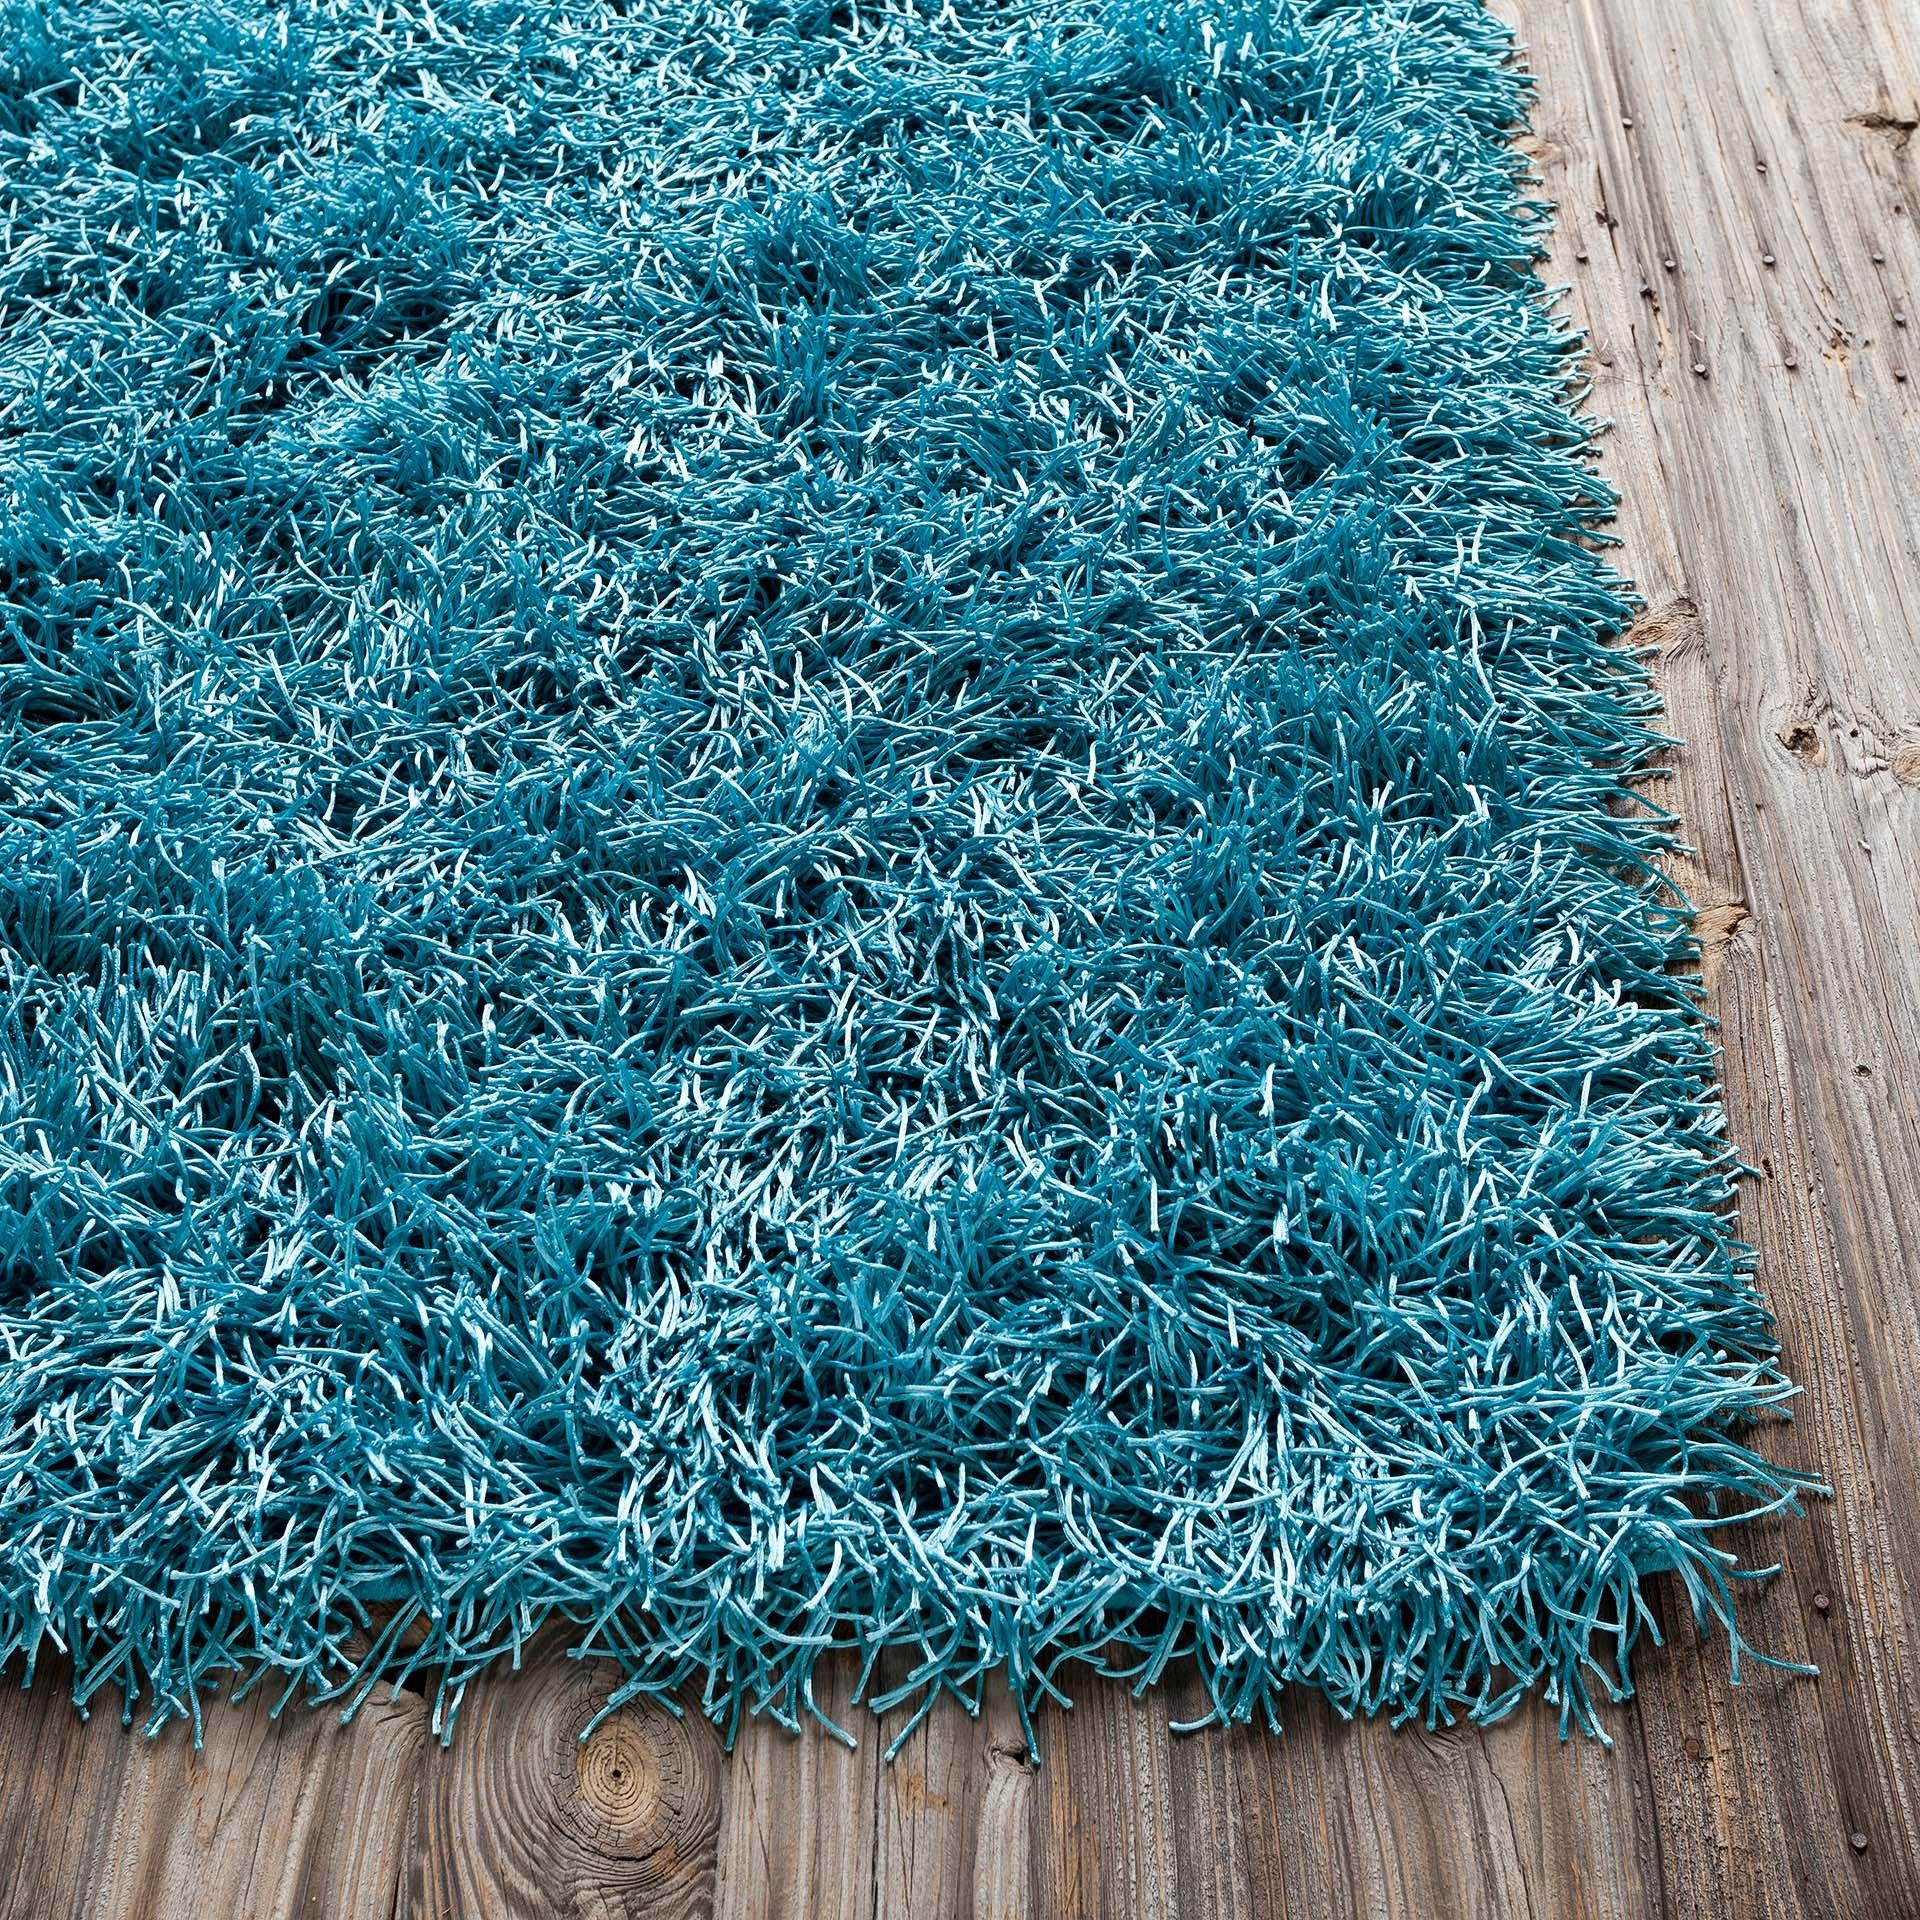 Blue Shag Rug Blue Shag Area Rug Shag Area Rug Rugs Area Rugs Hand Weaving